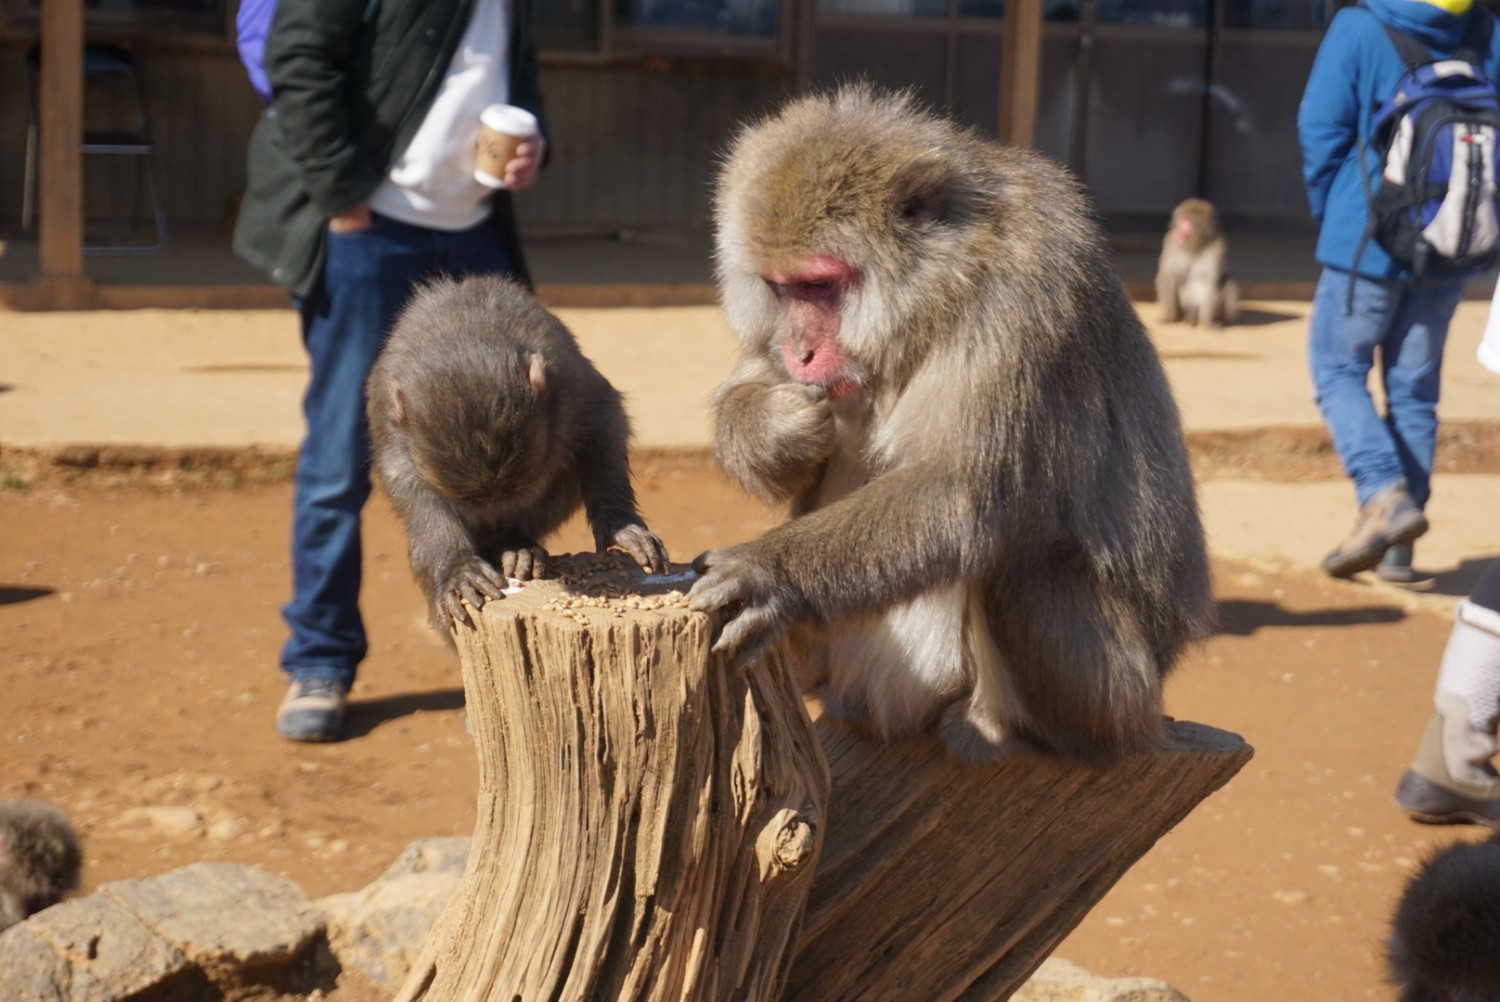 Baby monkey and mother eat seeds at monkey park in Kyoto, Japan.